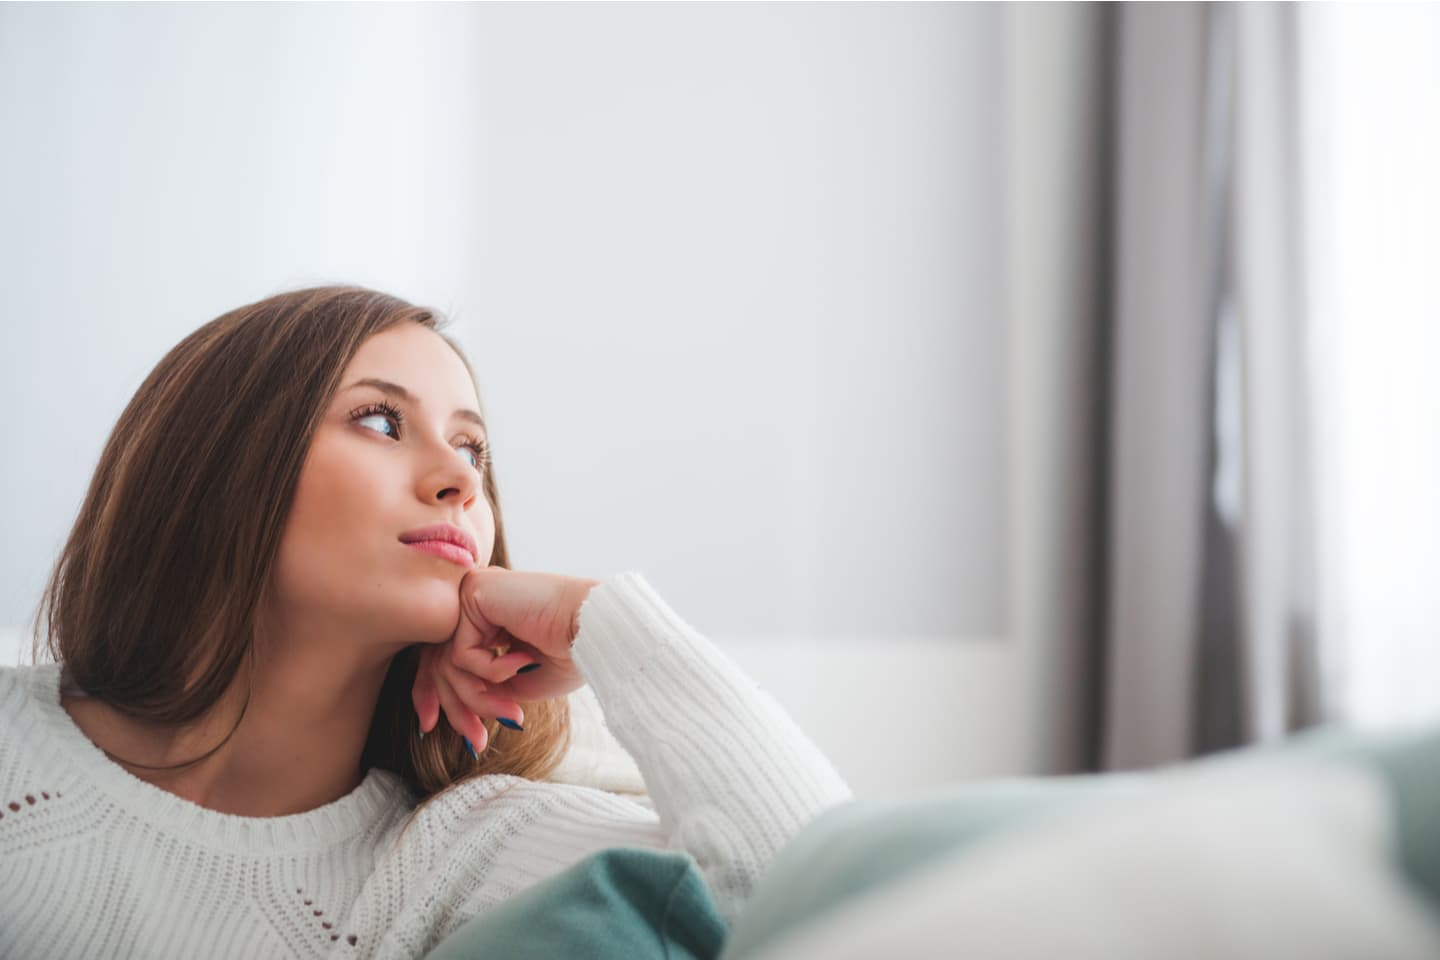 Young woman thinking on her couch